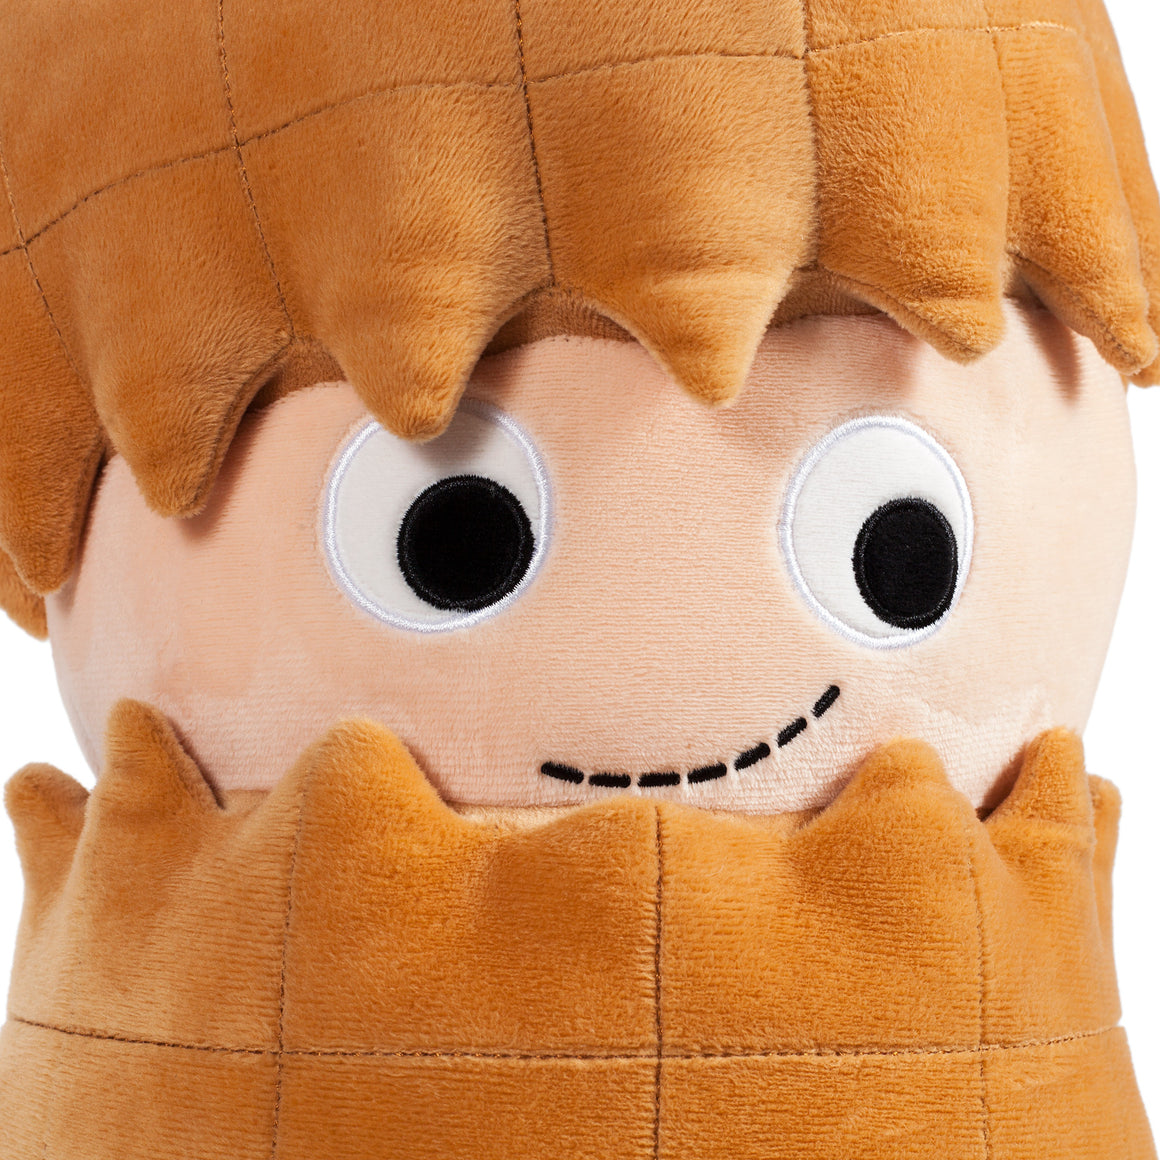 Yummy World Percy Peanut 24-inch Plush Toy by Heidi Kenney x Kidrobot - Special Order - Mindzai  - 1